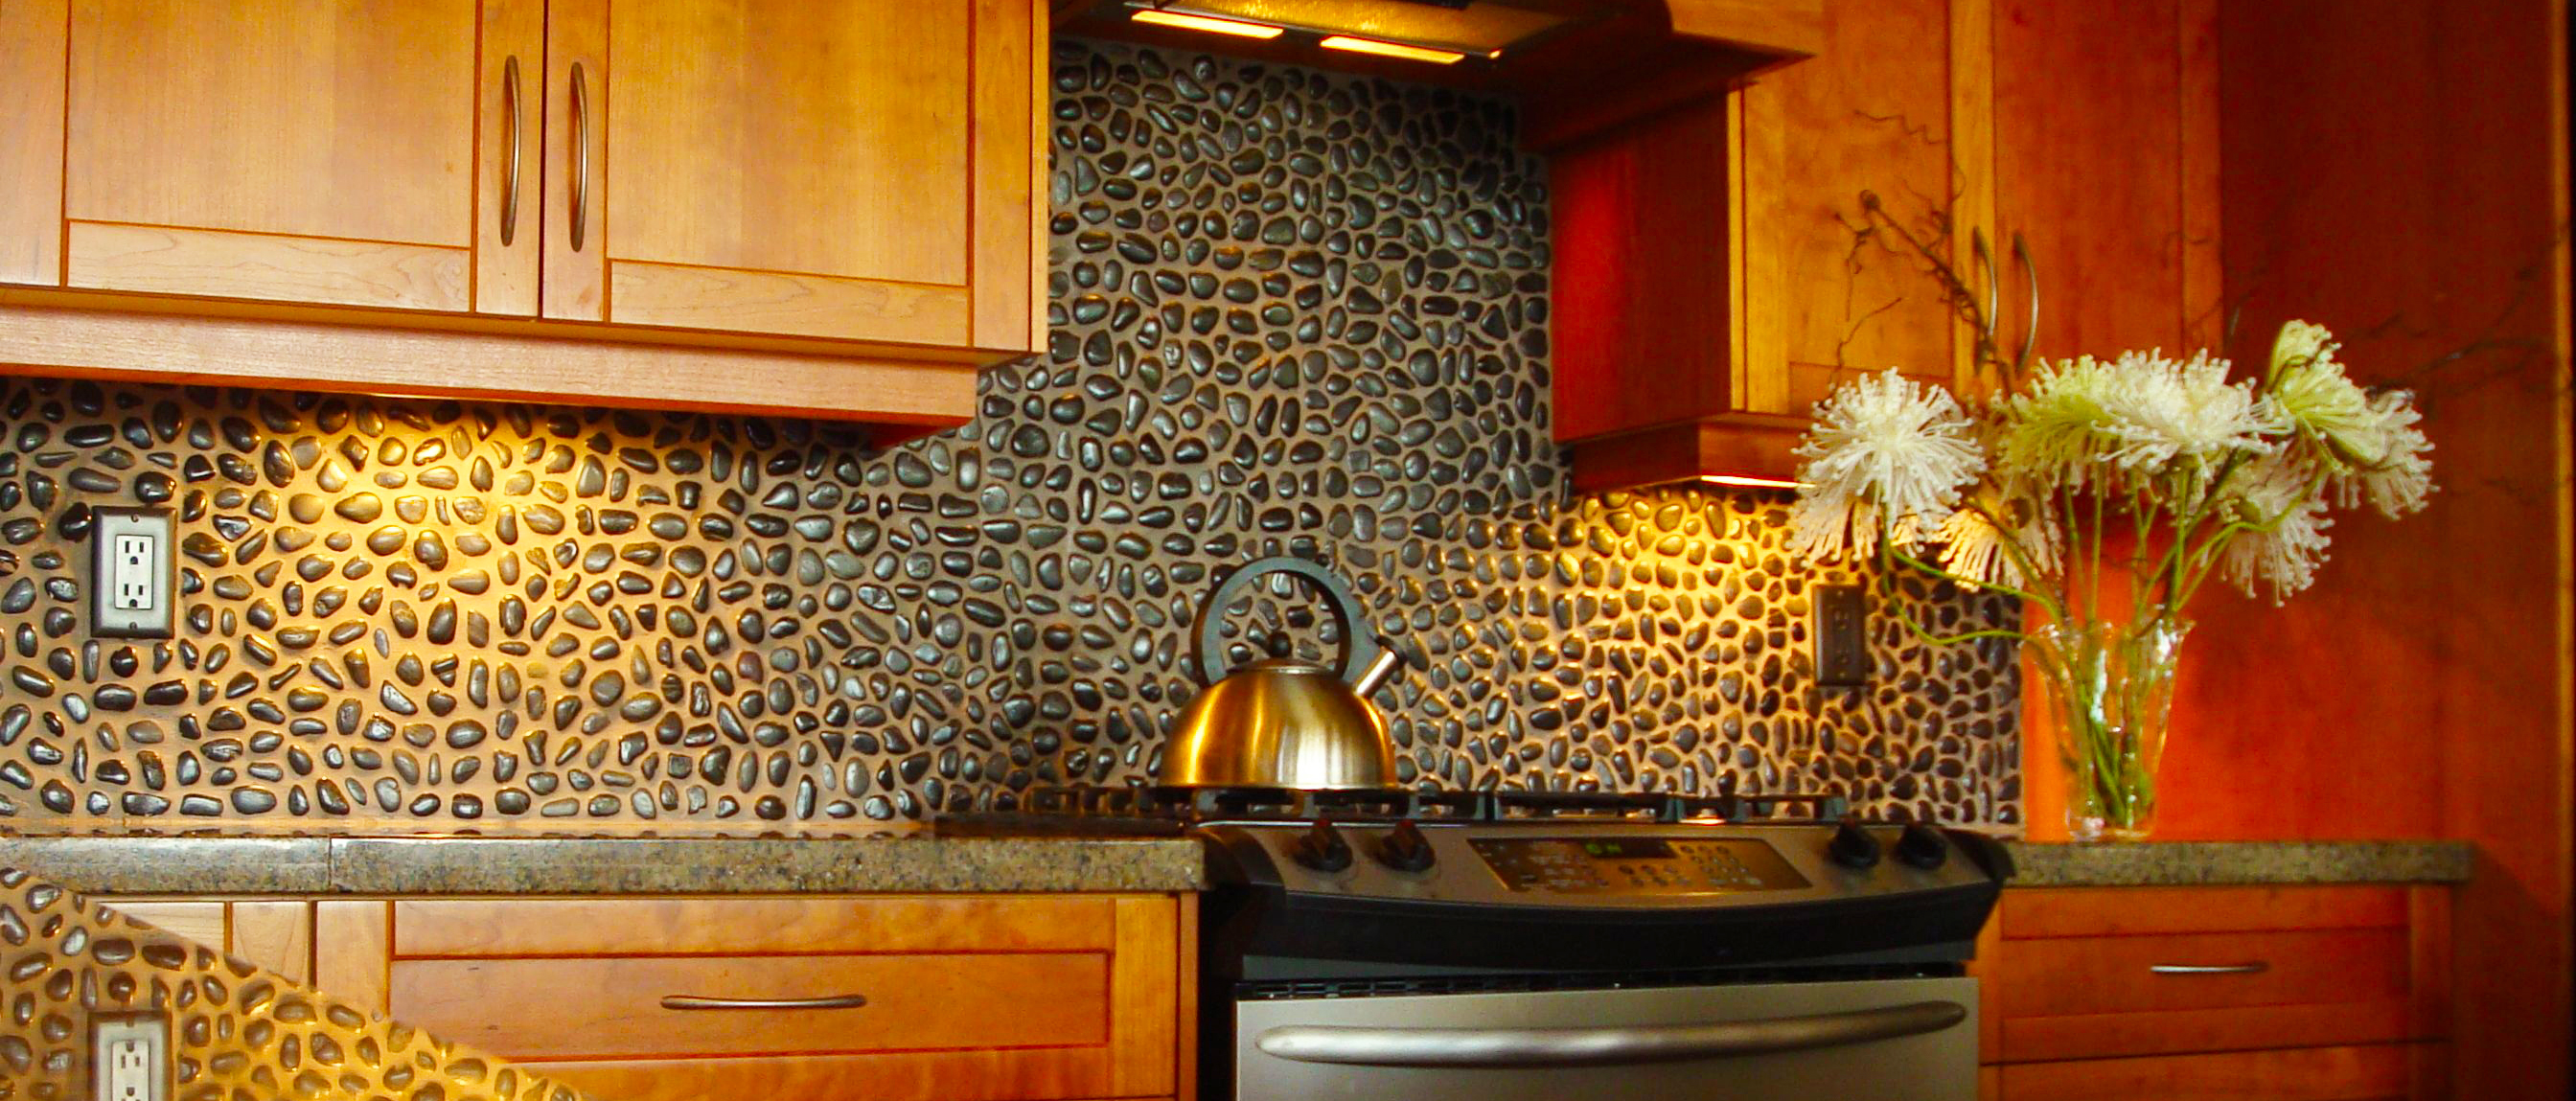 Backsplash tile ideas to get the best backsplash tile for kitchen with material quality and also decorative backsplash tile for kitchen